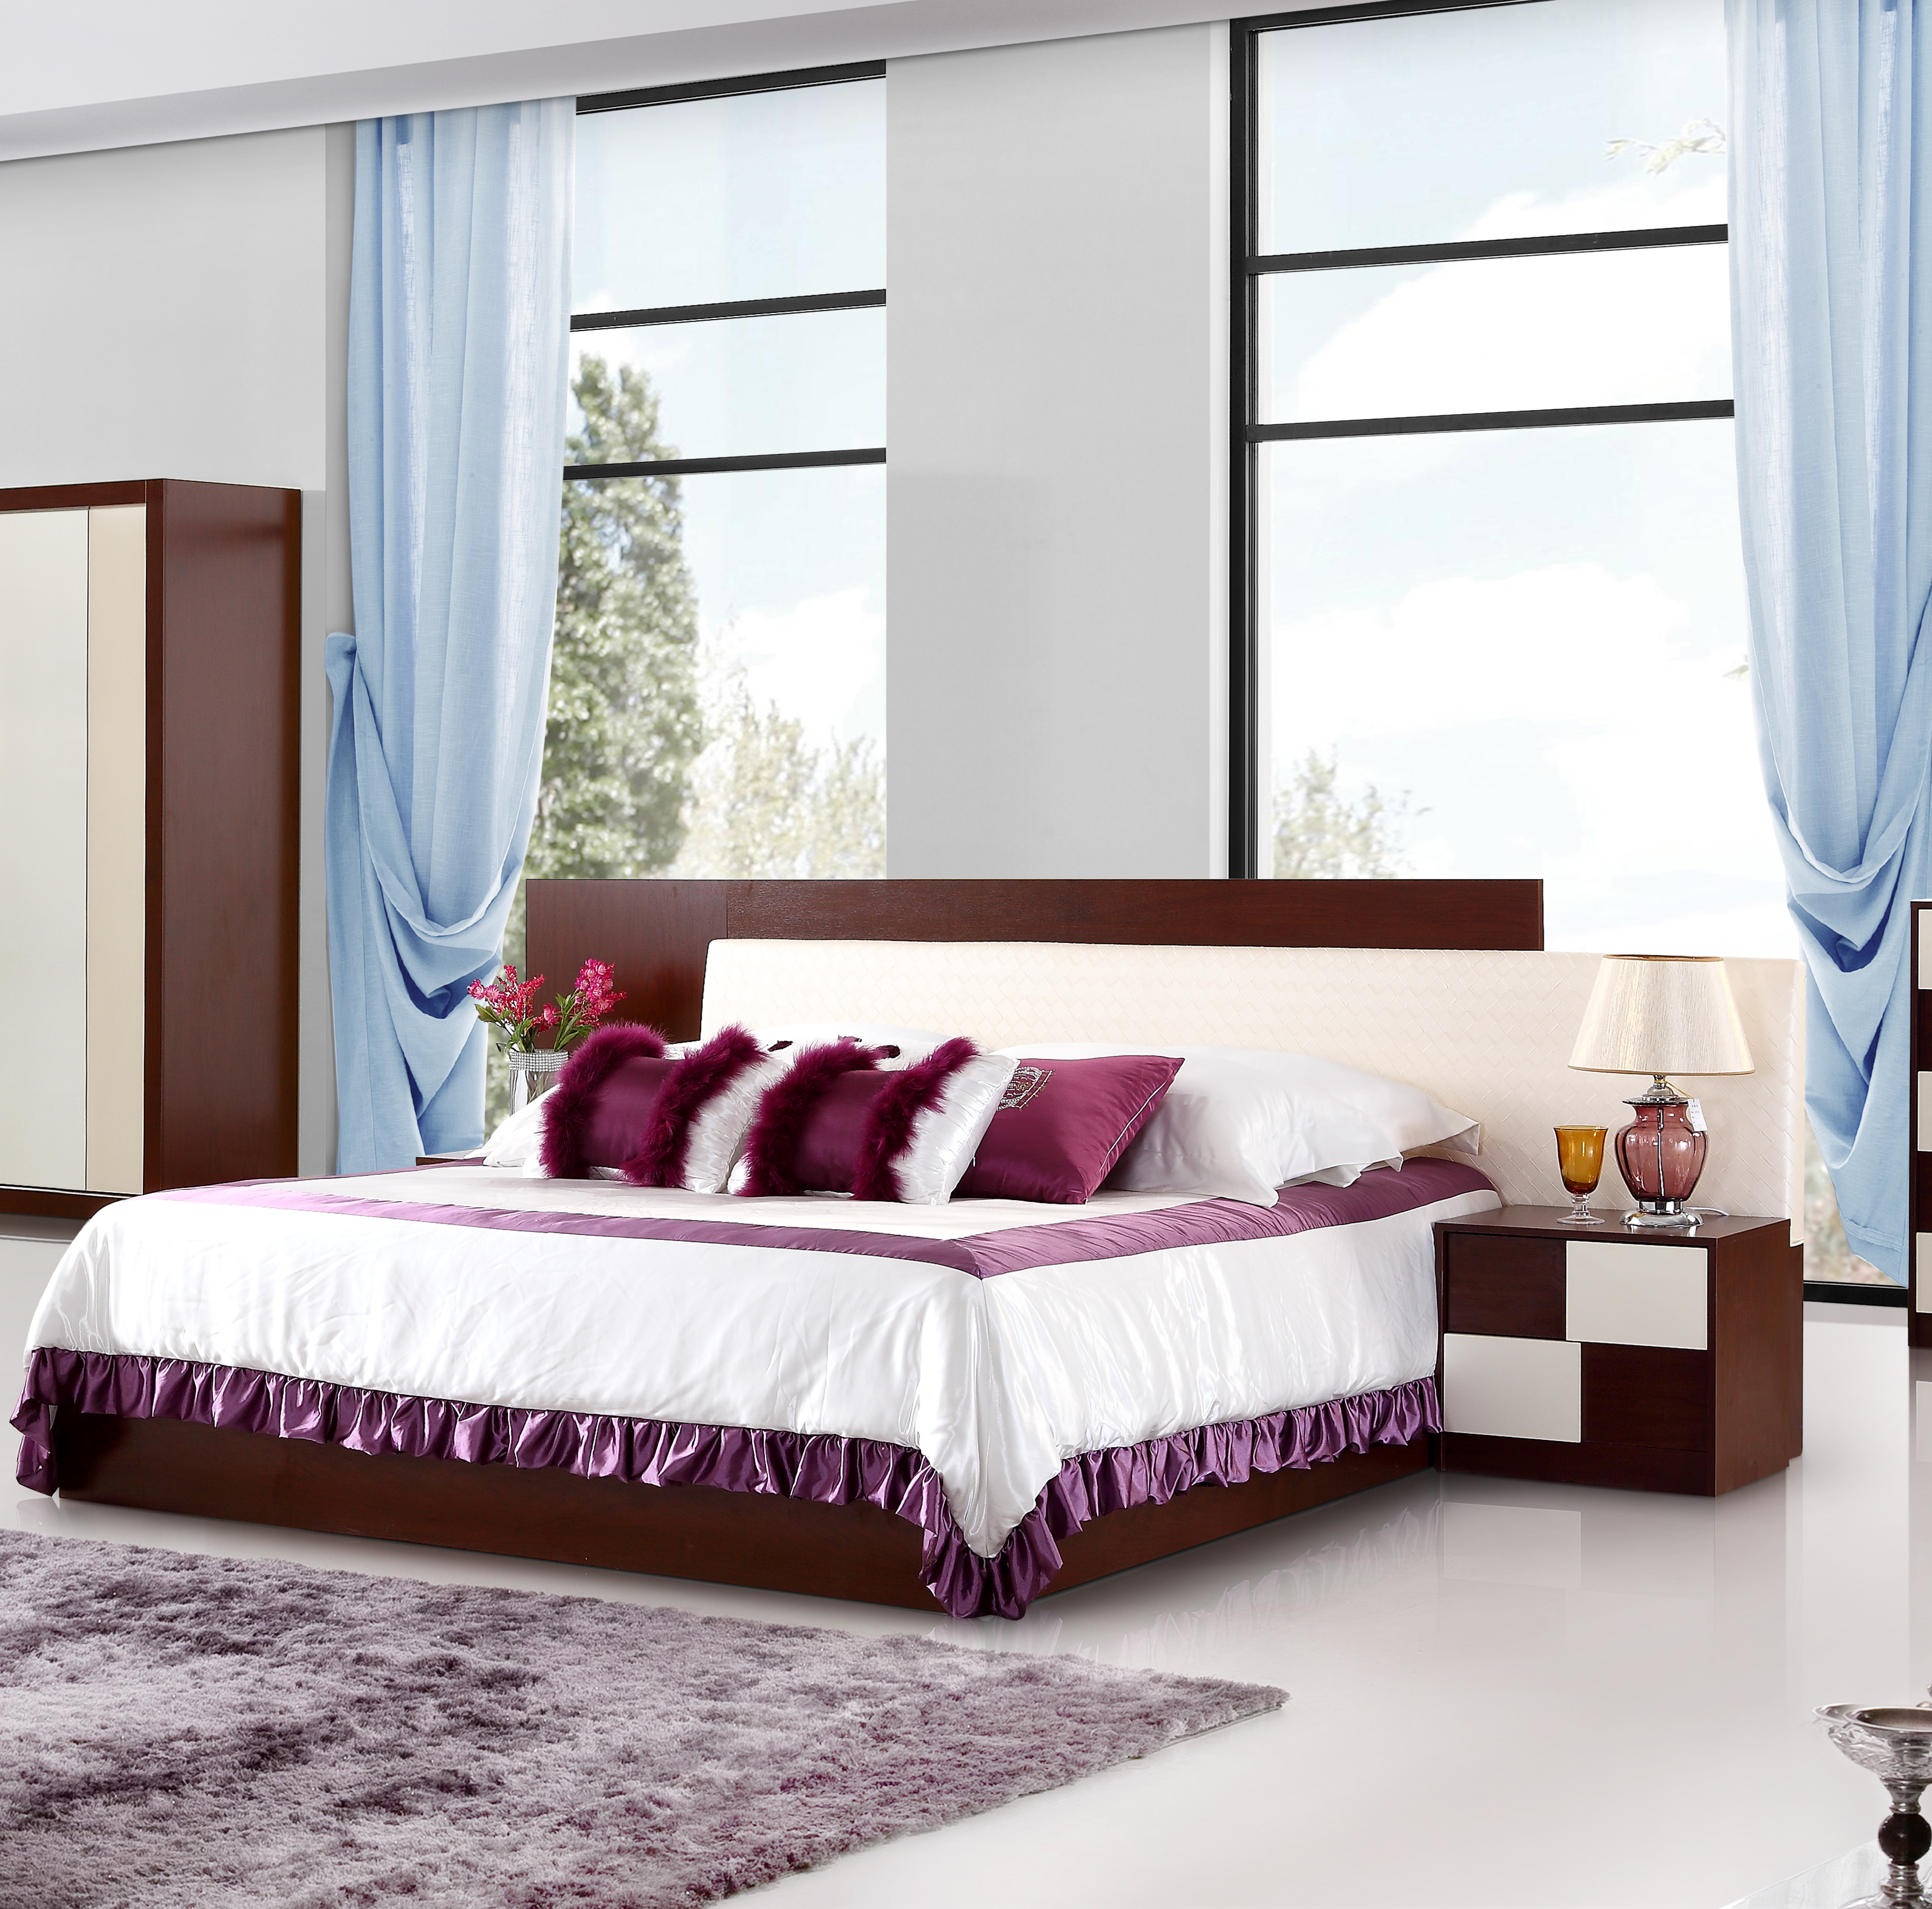 Modern Bed Room Furniture Bedroom Set/king Size China Bedroom Furniture  /modern New Model Wooden Bedroom Furniture Made In China - Buy Bed Room ...